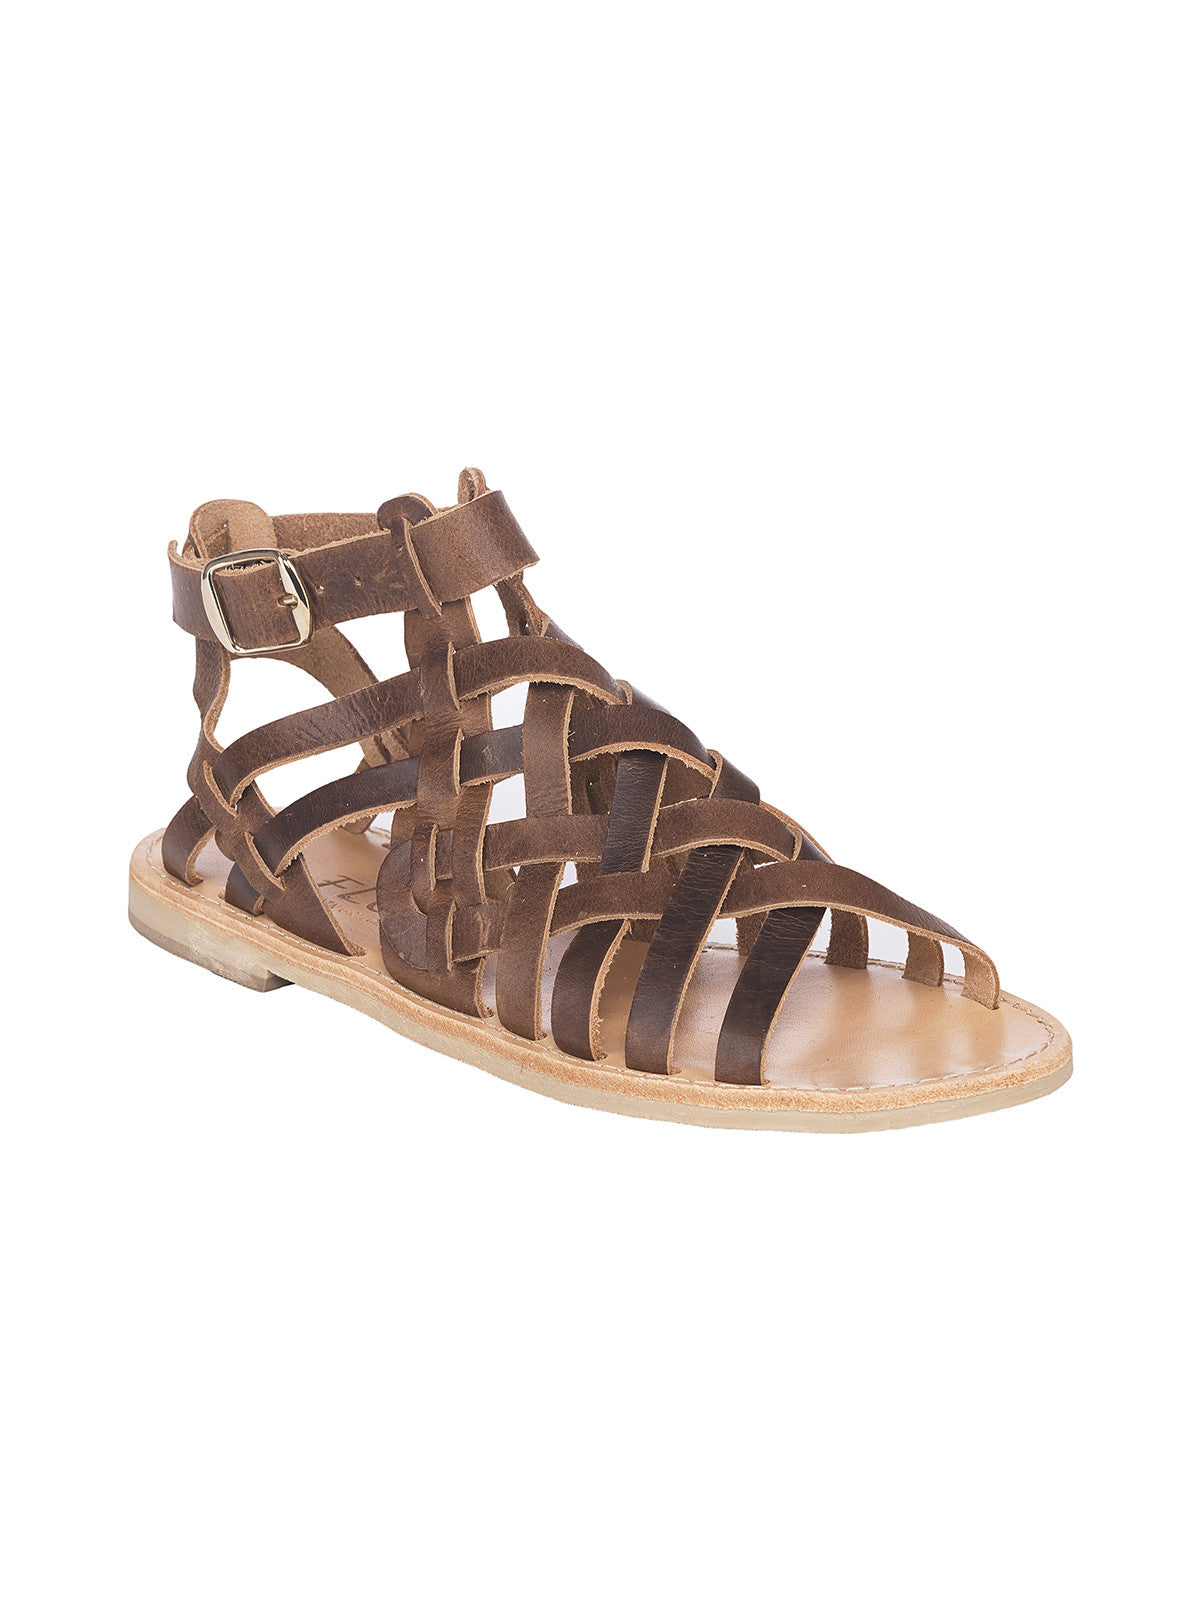 Nemesis Greek Sandals